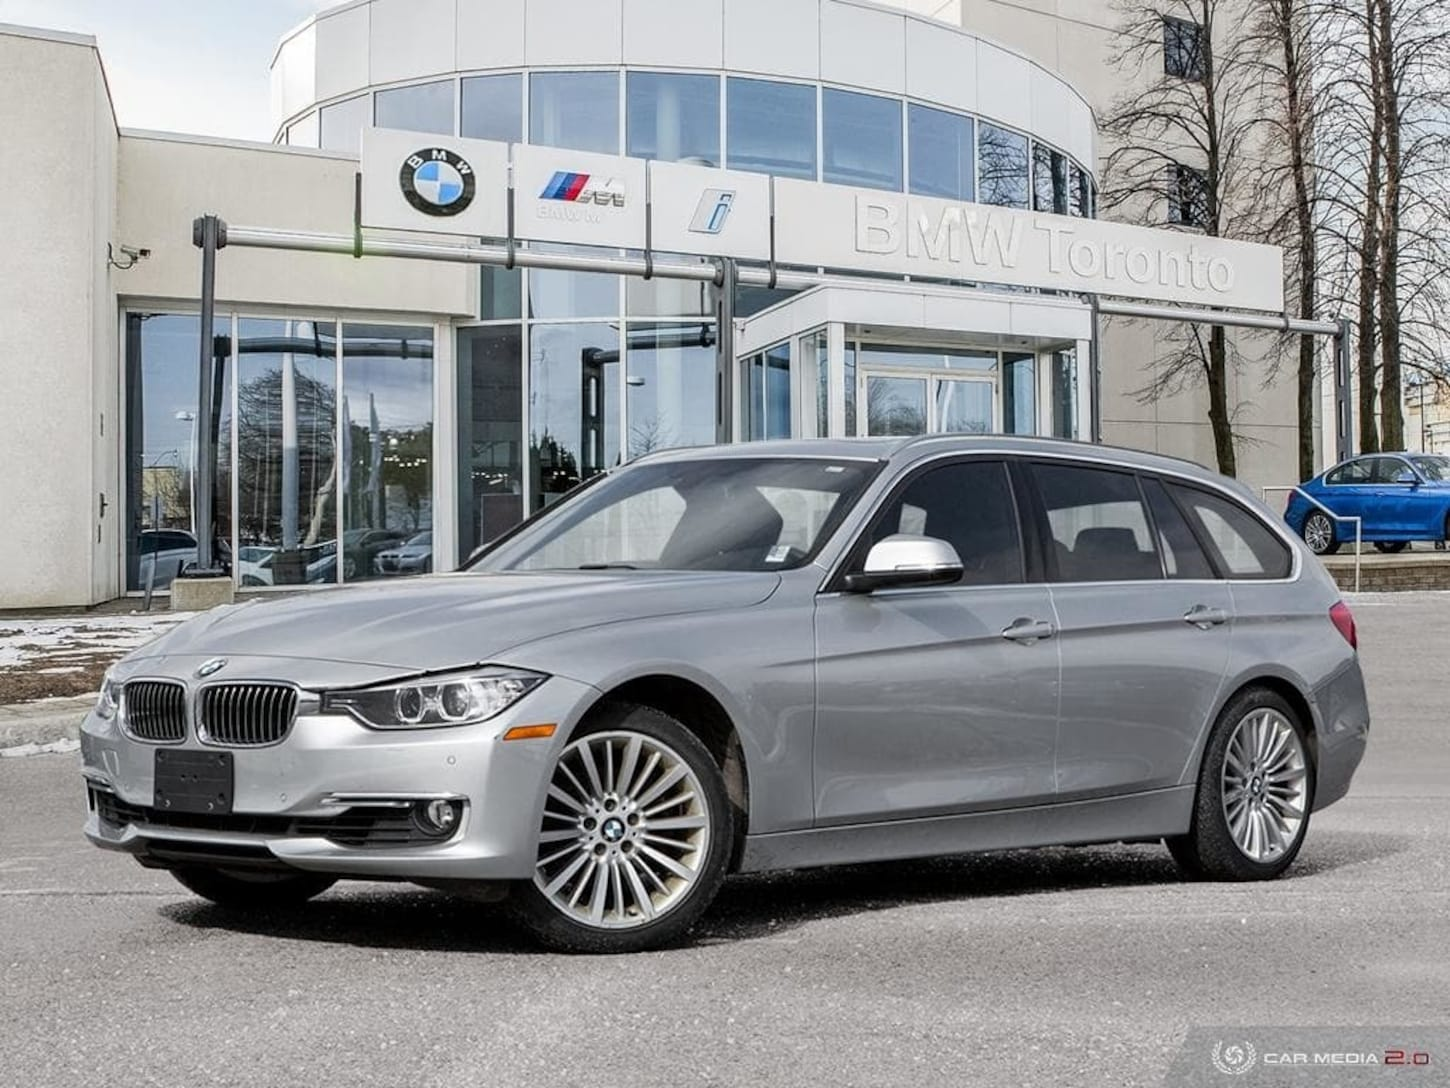 2015 BMW 328i Xdrive Touring W/ Nav! Financing Available!